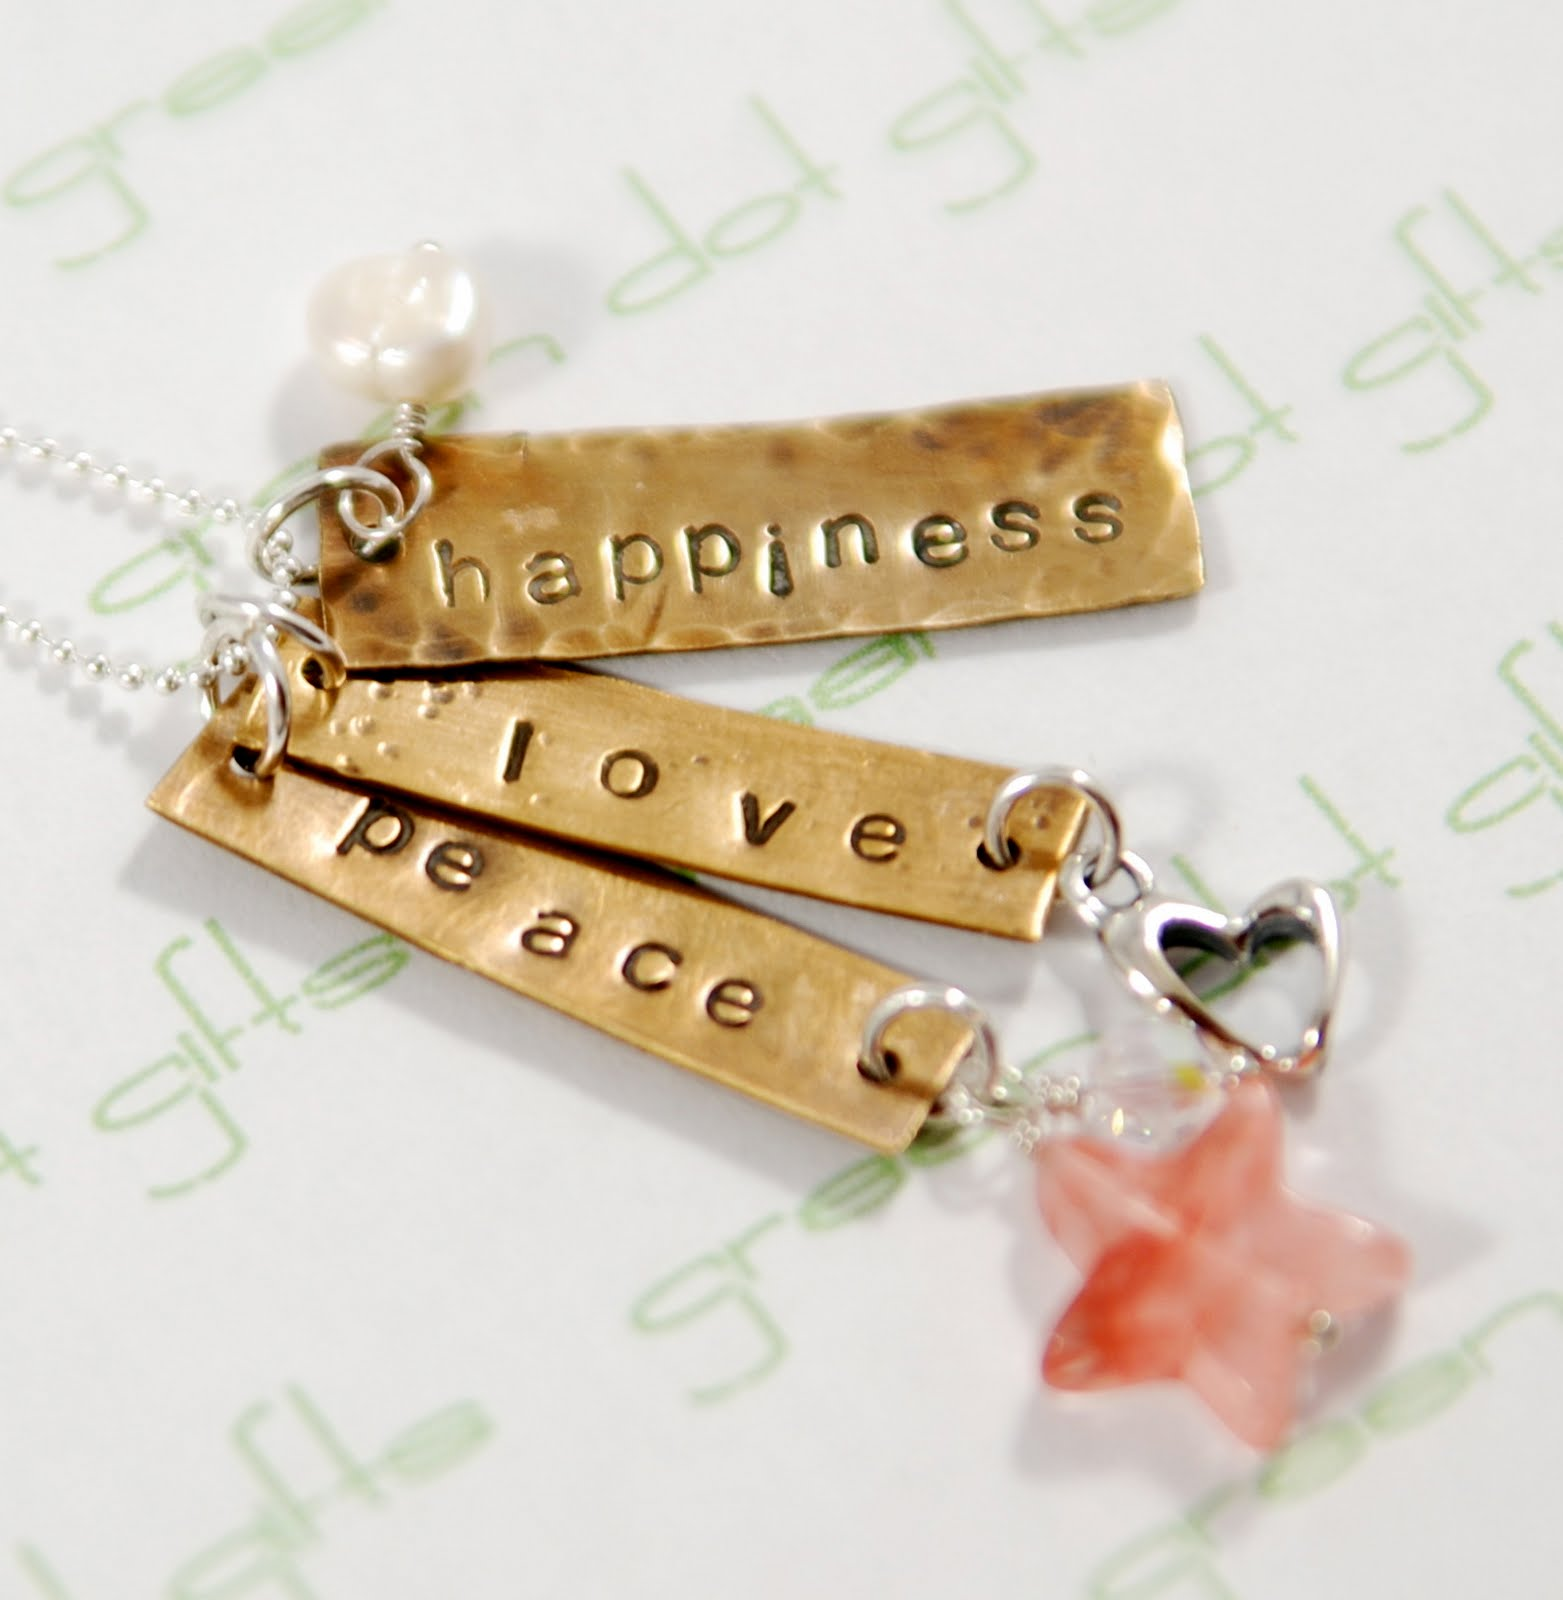 and dangles who needs a little peace love and happiness